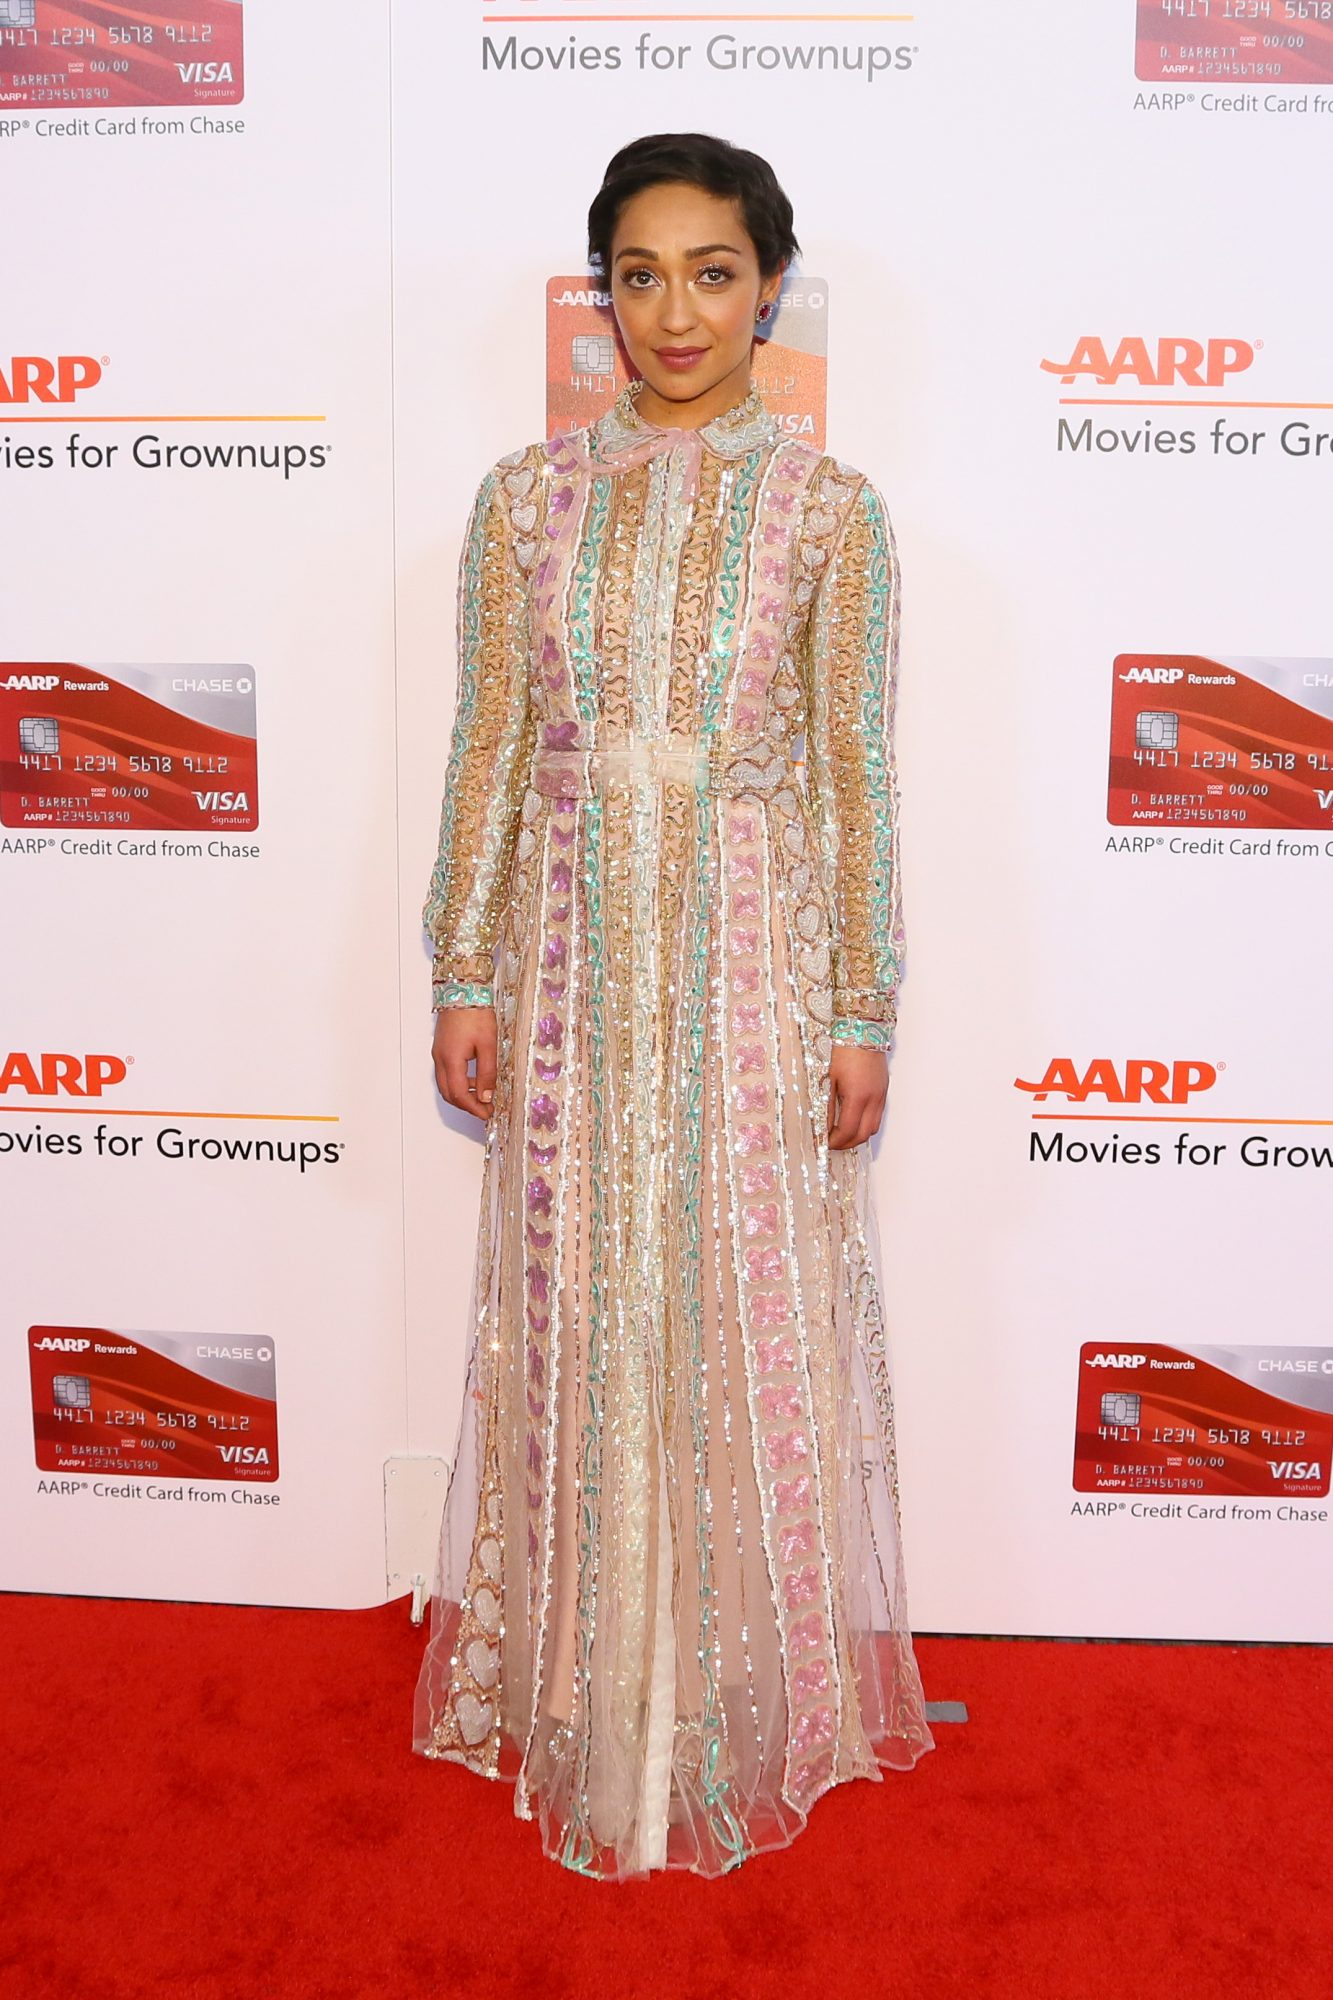 BEVERLY HILLS, CA - FEBRUARY 06:  Ruth Negga attends the 16th Annual AARP The Magazine's Movies For Grownups Awards at the Beverly Wilshire Four Seasons Hotel on February 6, 2017 in Beverly Hills, California.  (Photo by Gabriel Olsen/Getty Images for AARP)